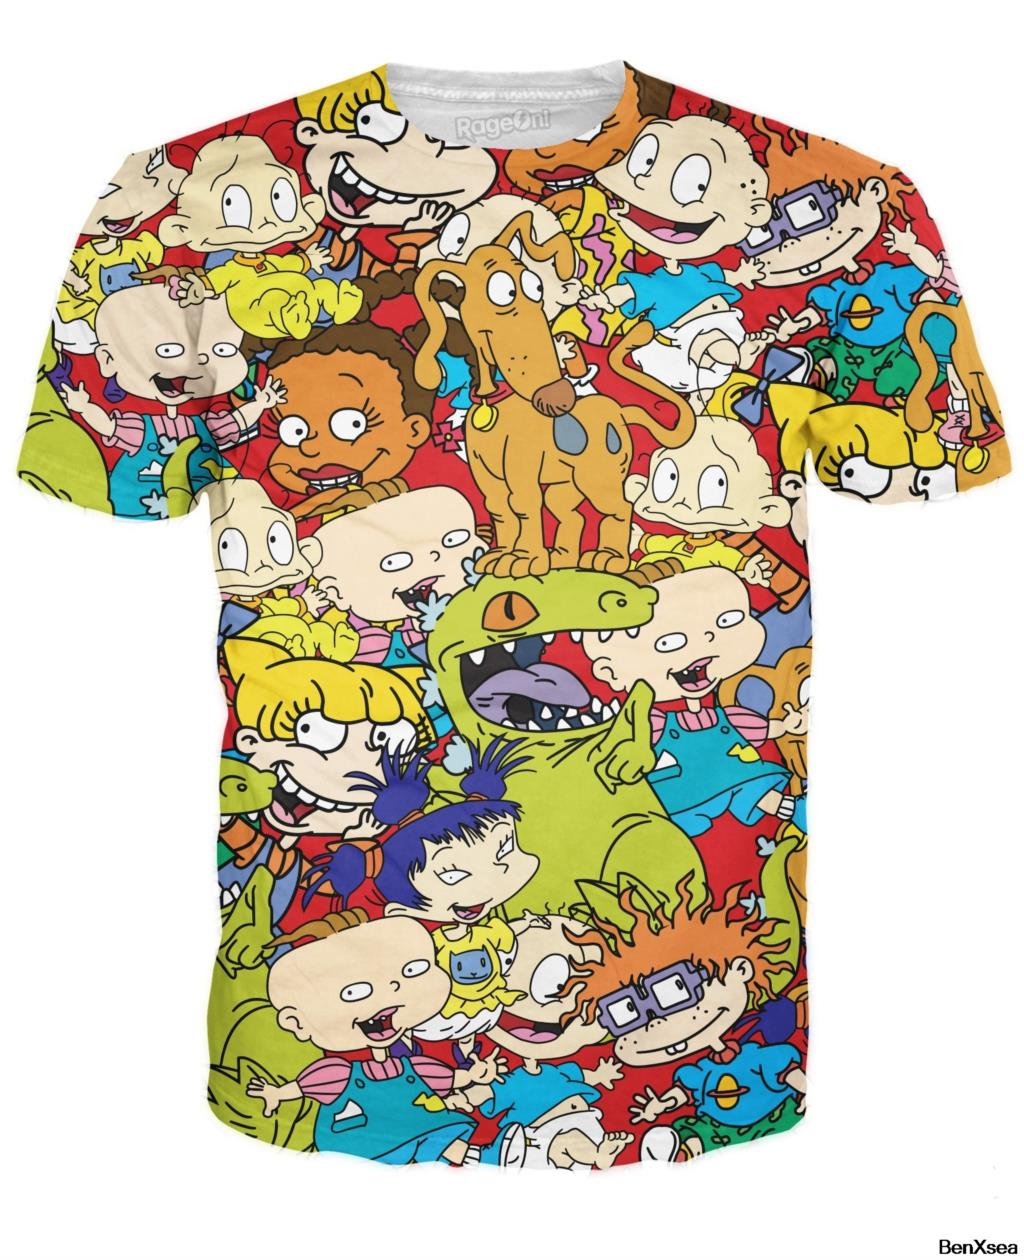 NEW 2018 <font><b>3D</b></font> Printed Rugrats <font><b>T</b></font> <font><b>Shirt</b></font> <font><b>Sexy</b></font> Women Men TOP Tees image